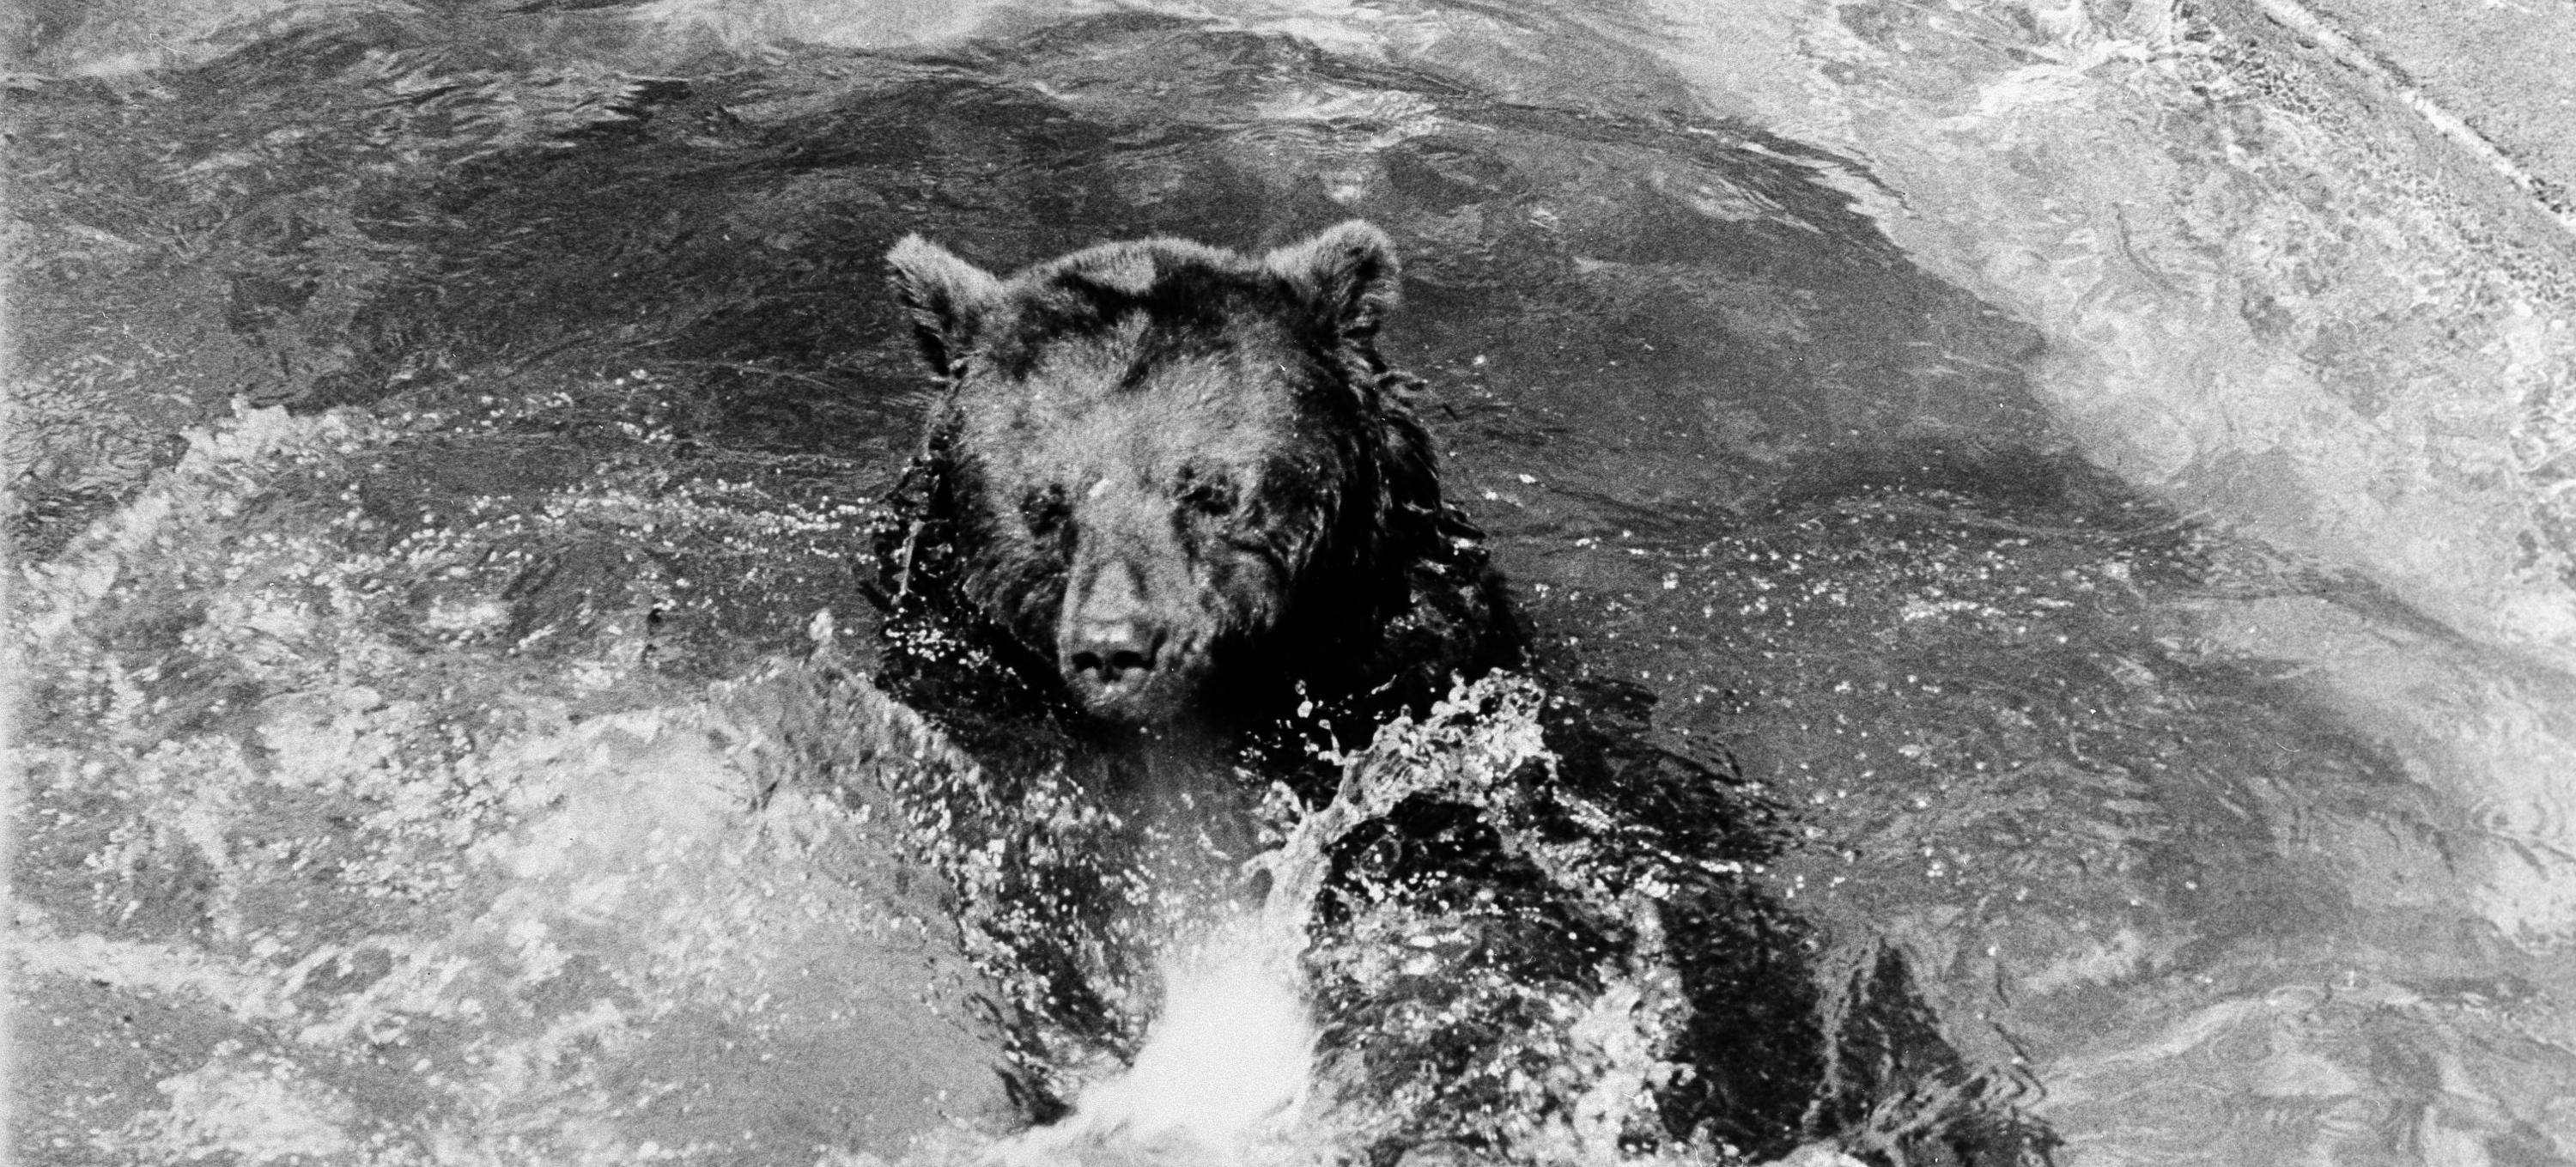 """The real life """"Smokey the Bear,"""" shown here frolicking in a pool at the National Zoo c.1950, was the embodiment of a fire safety public awareness campaign that started during World War II. (Photo credit: Francine Schroeder, Smithsonian Institution Archives. Used for educational purposes in accordance with the Smithsonian Archives terms of use.)"""